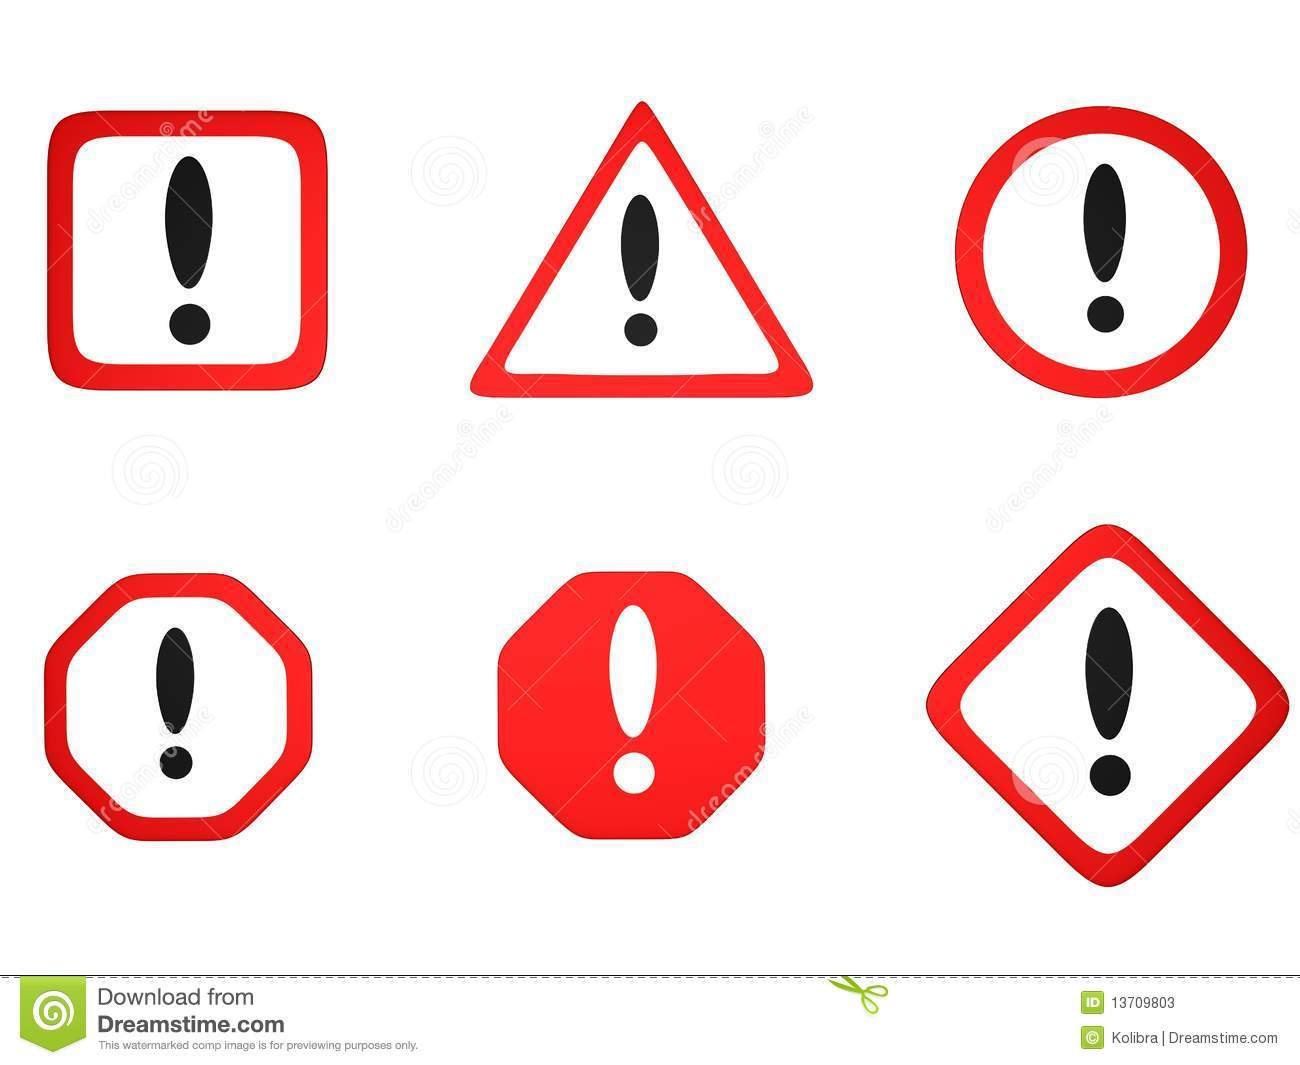 Road Warning Signs And Their Meanings A road sign with exclamation